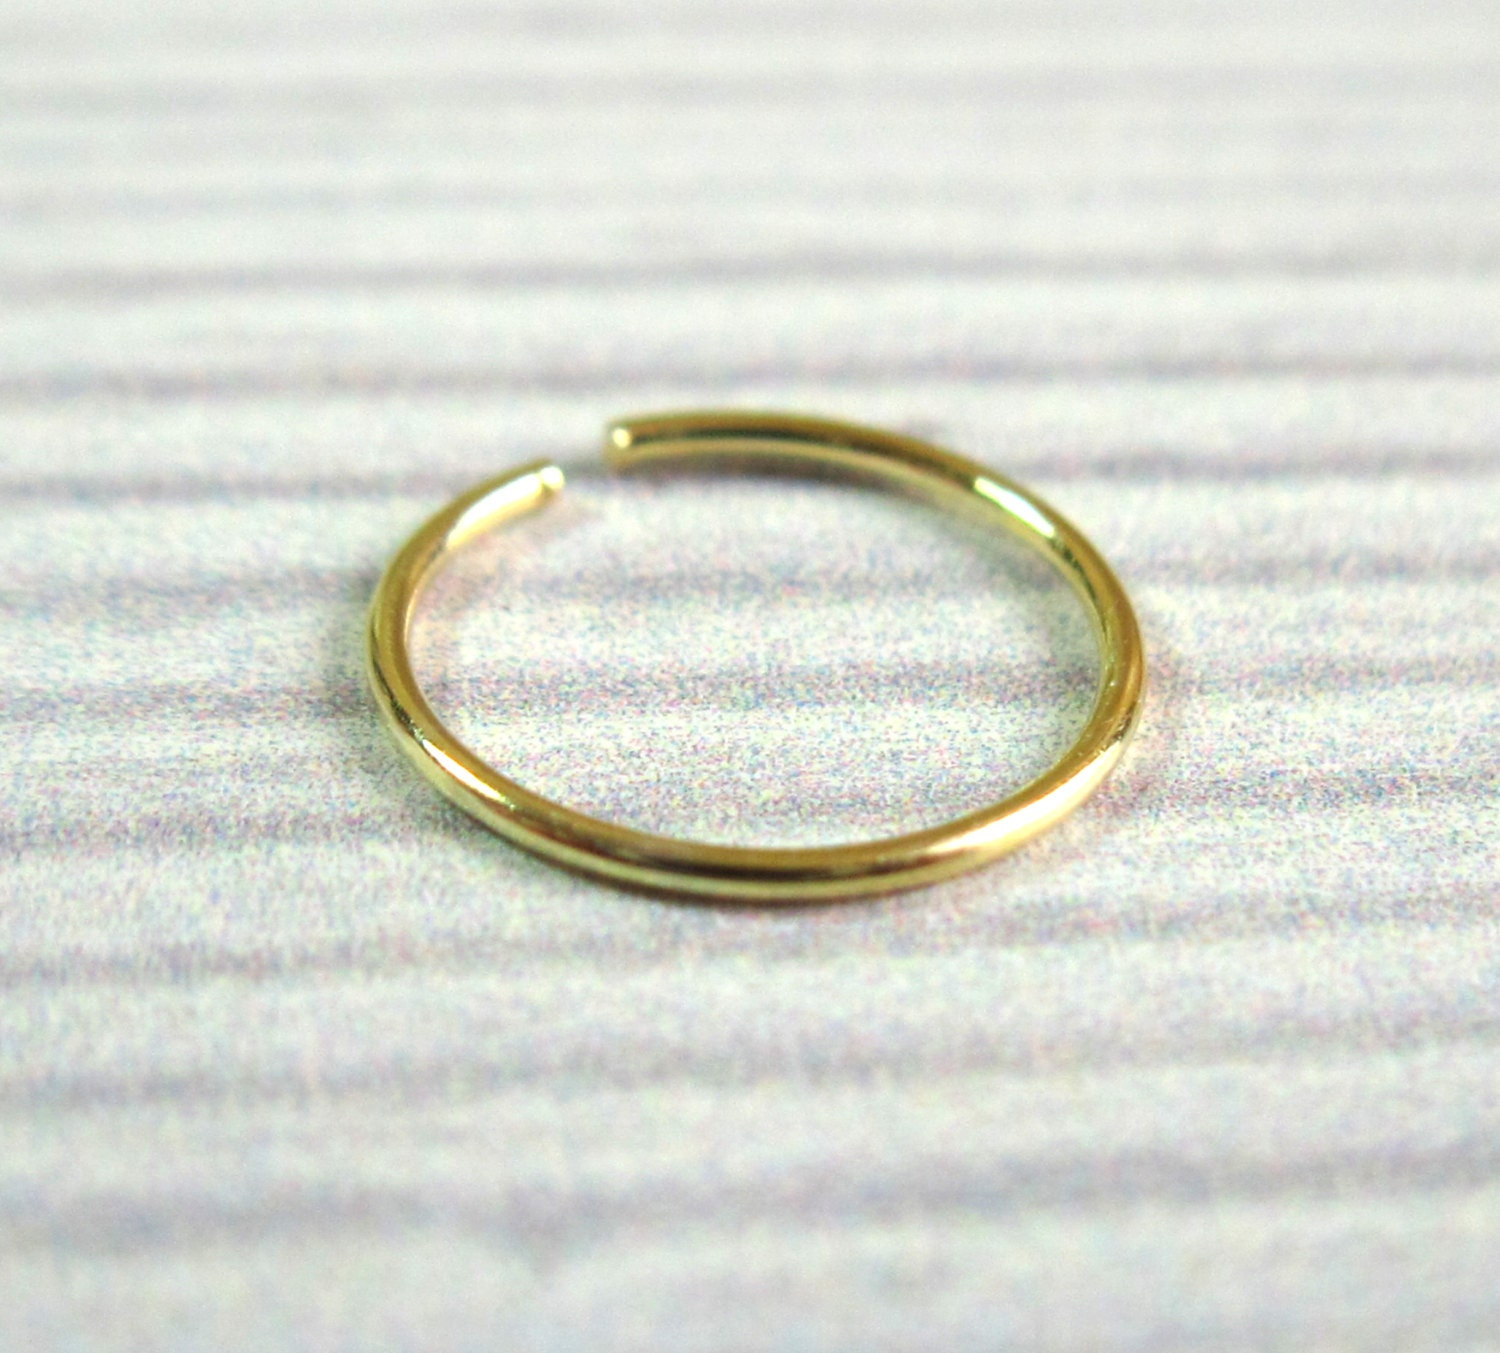 gold nose hoop ring gold nose hoop nose jewelry by baronykajd